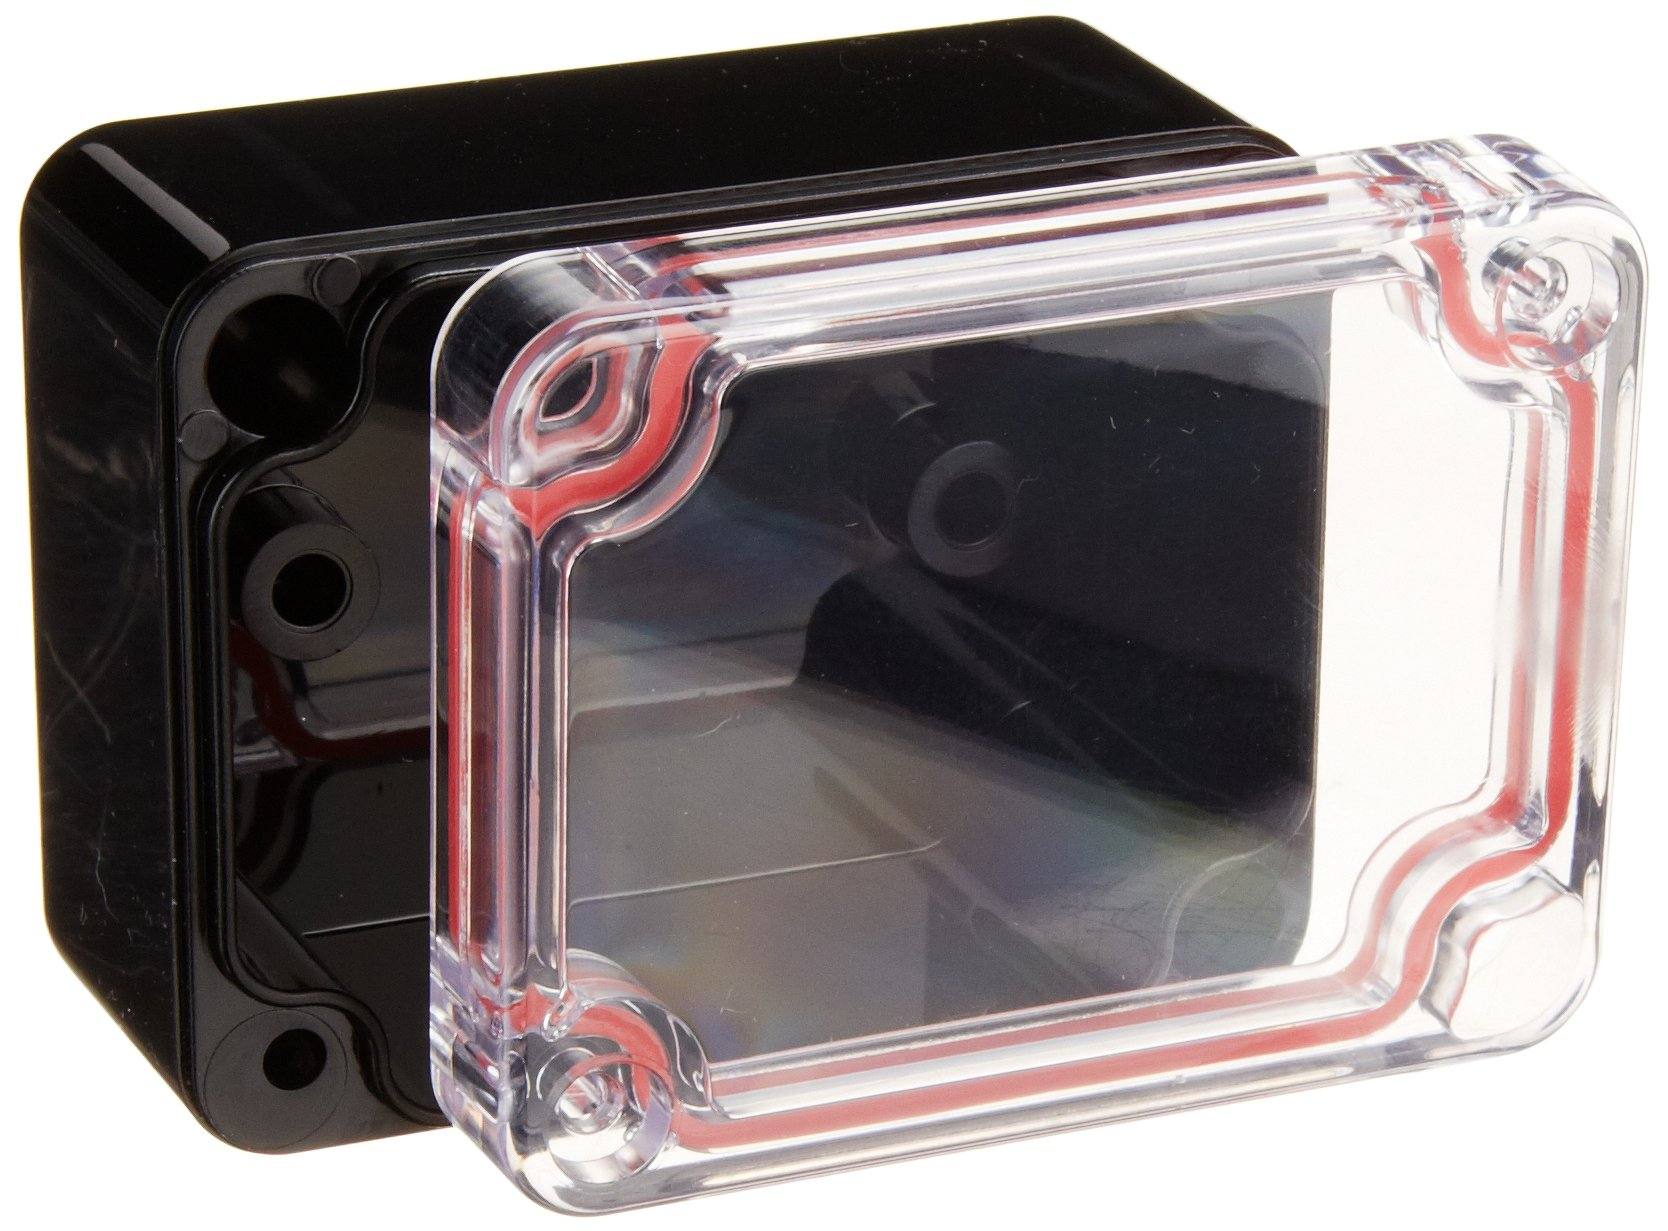 Serpac RB22-1TC1BB Polycarbonate Plastic Enclosure, 2.55'' Length x 1.97'' Width x 1-3/8'' Height, Top Clear/Bottom Black by Serpac